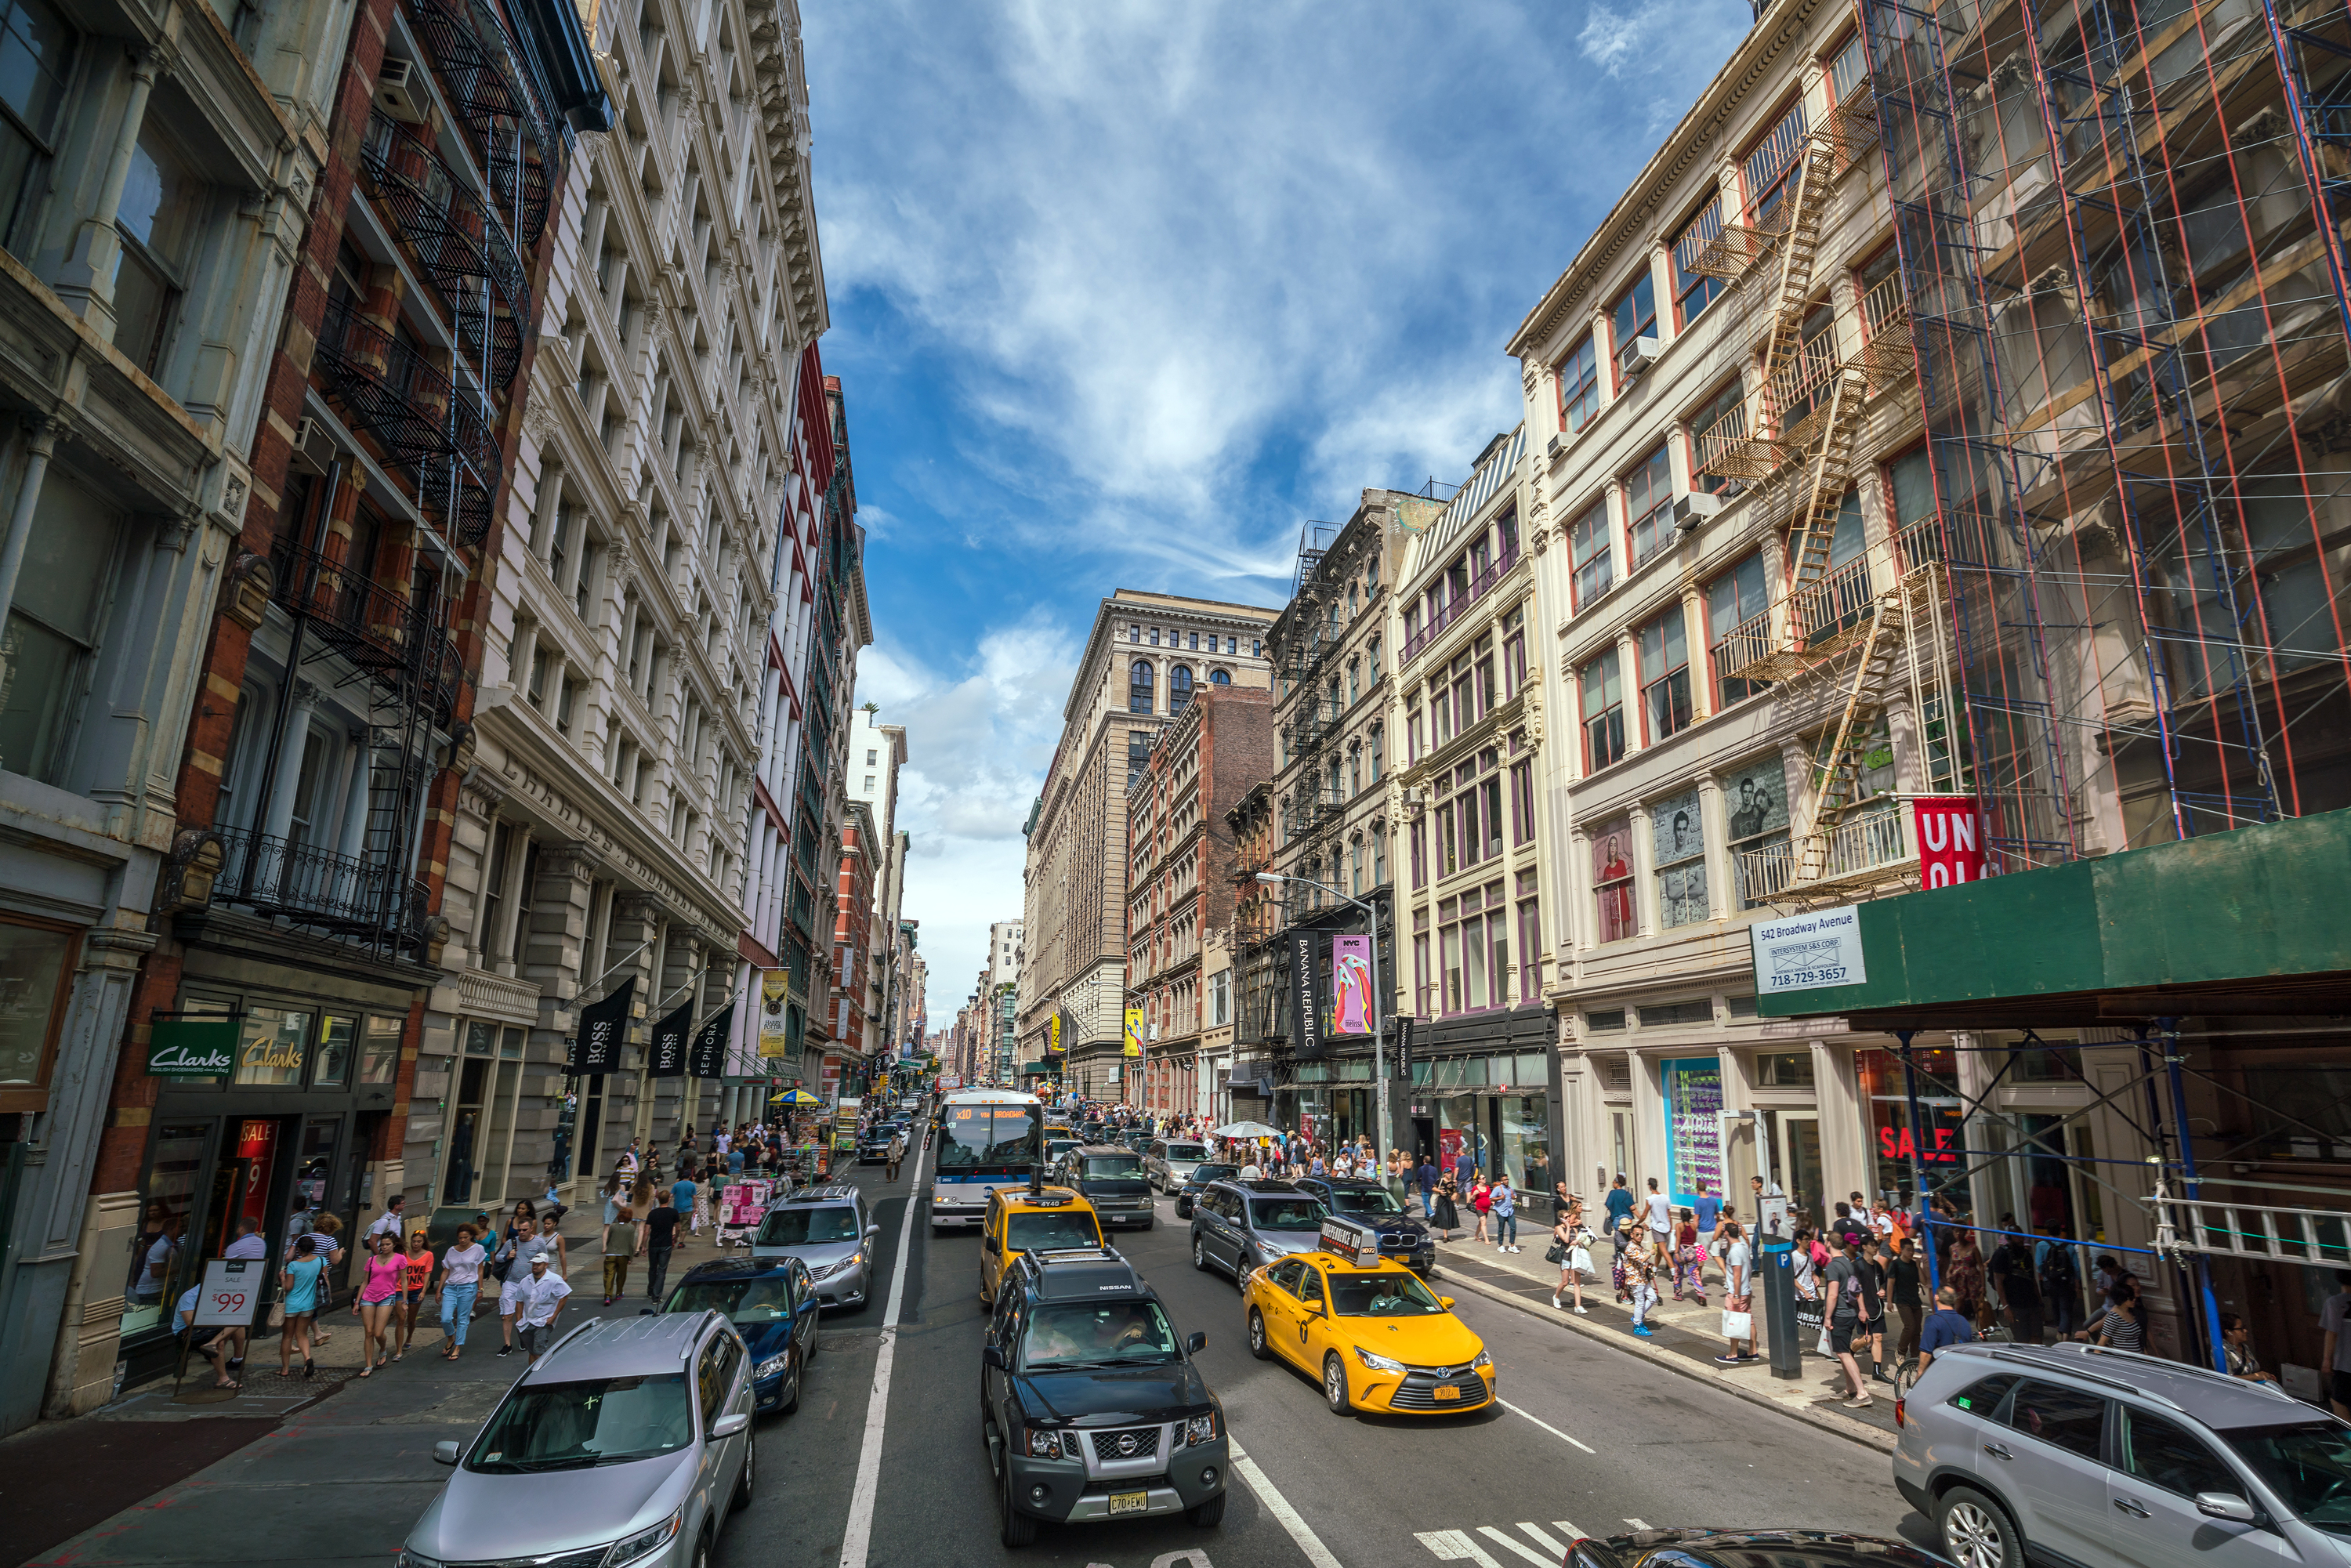 The best things to do in Soho